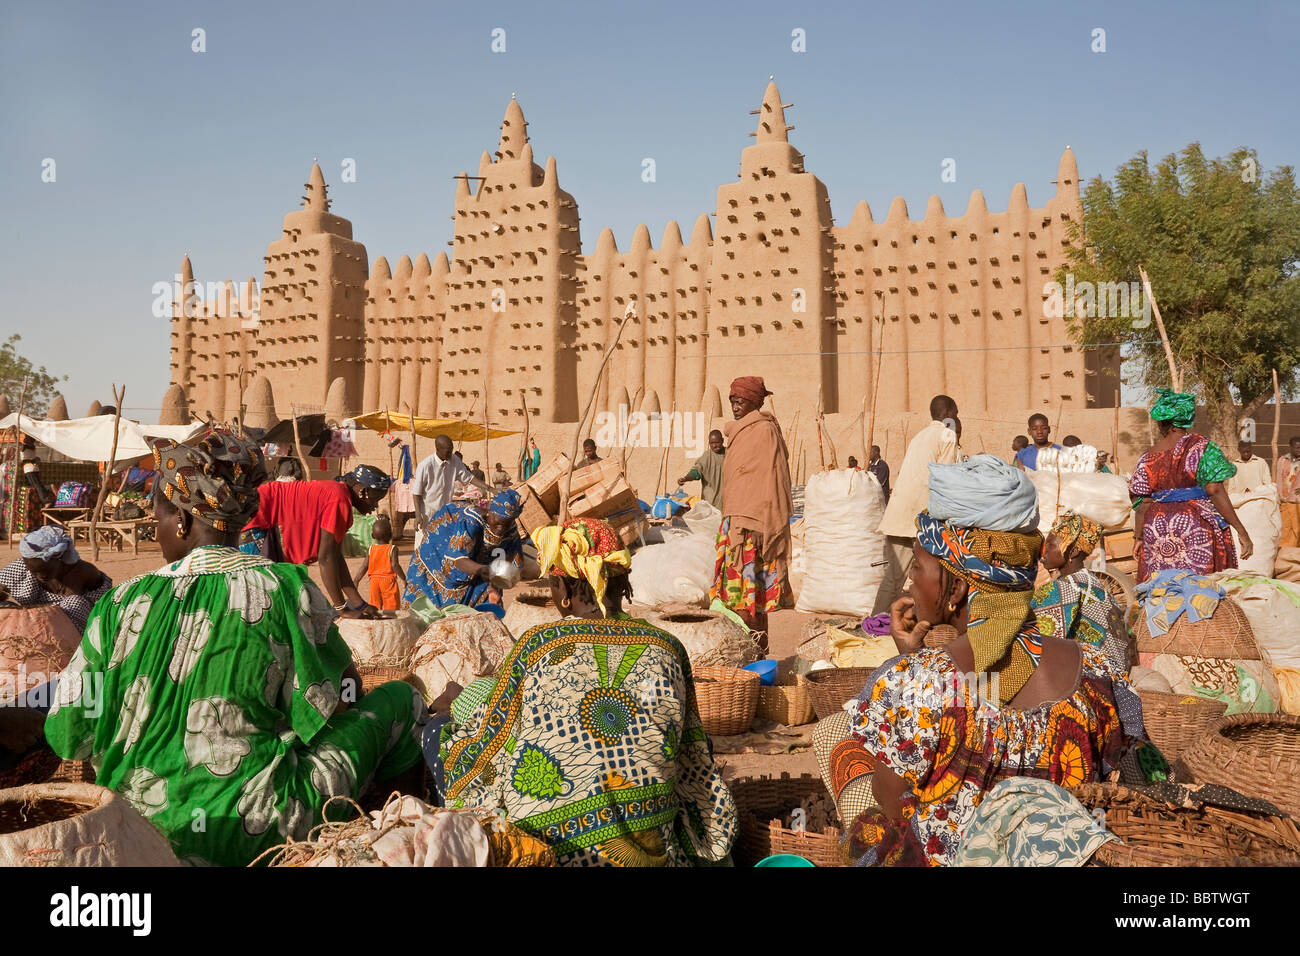 Great Mosque of Djenne, Djenne, Mopti Region, Niger Inland Delta, Mali, West Africa Stock Photo